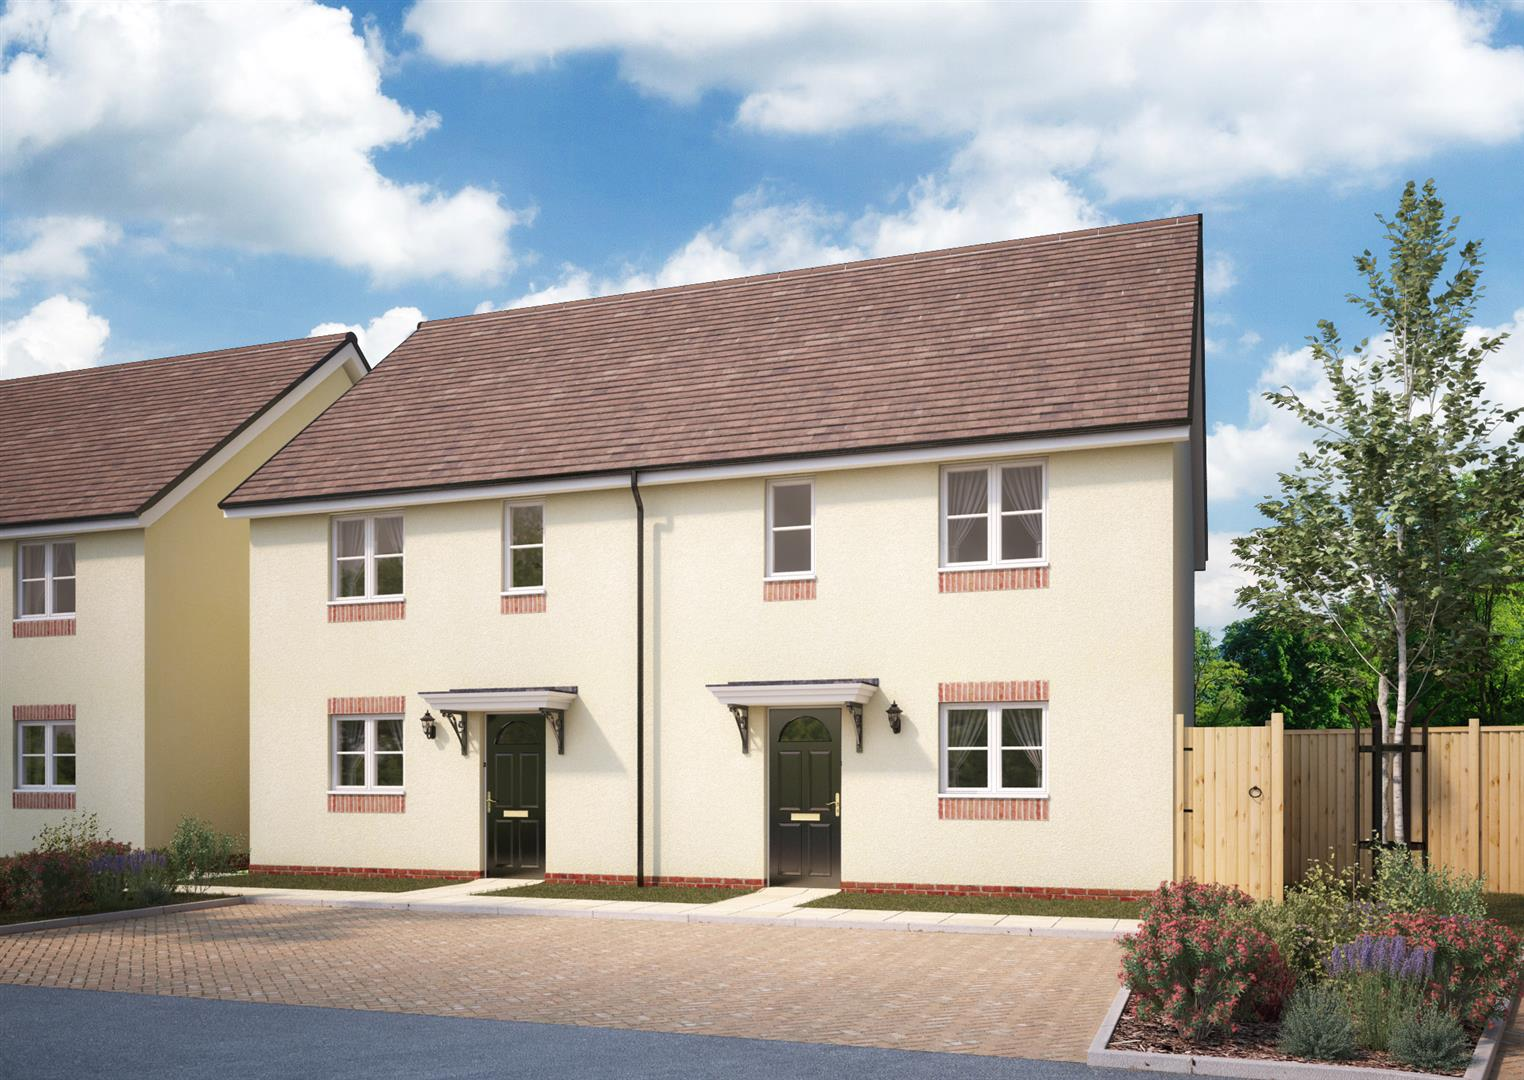 3 Bedrooms Semi Detached House for sale in High Penn park